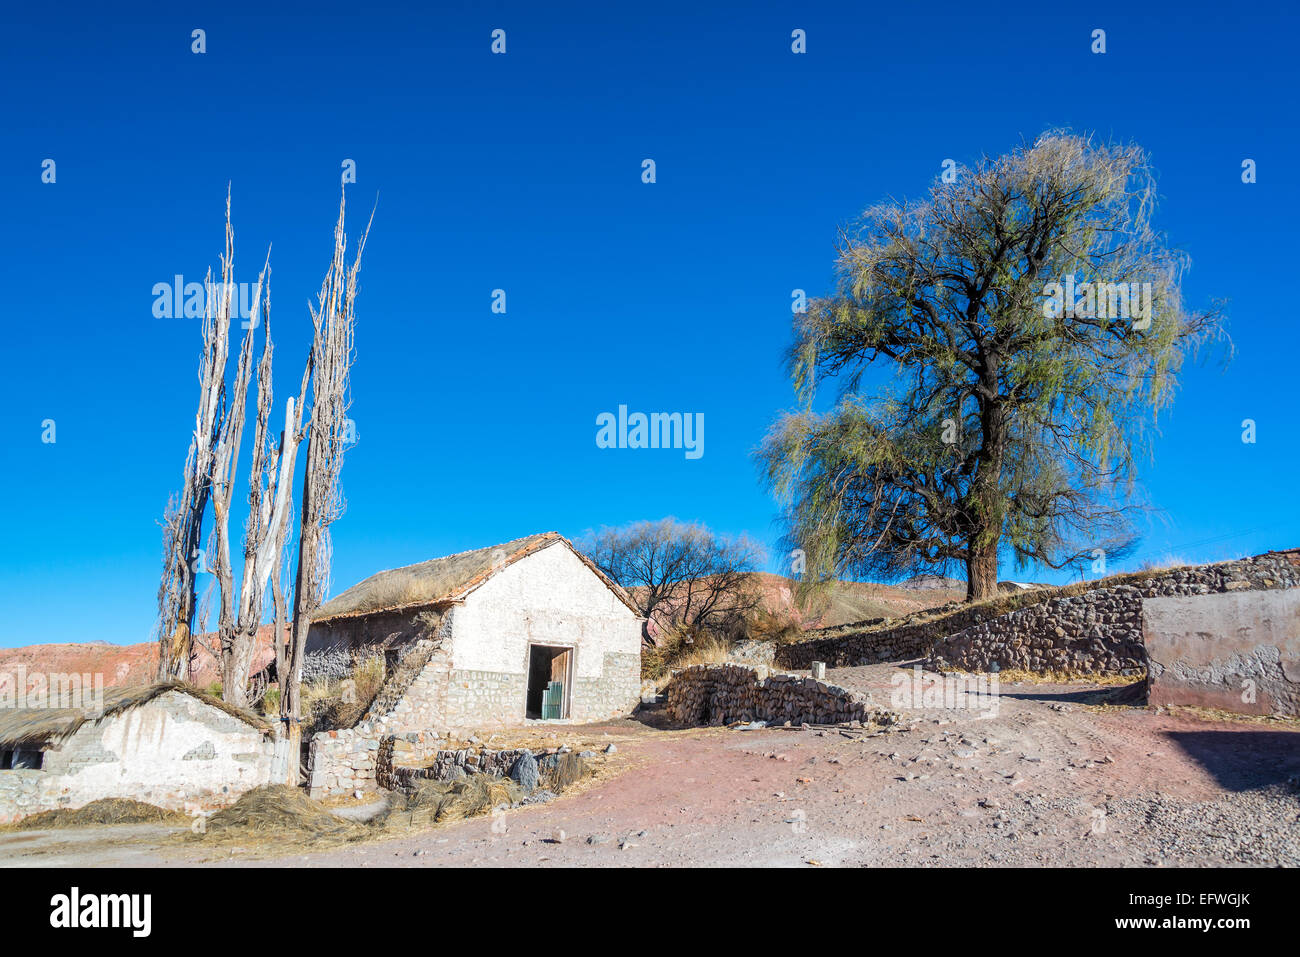 Old stone building in arid rural Bolivia near Potosi - Stock Image